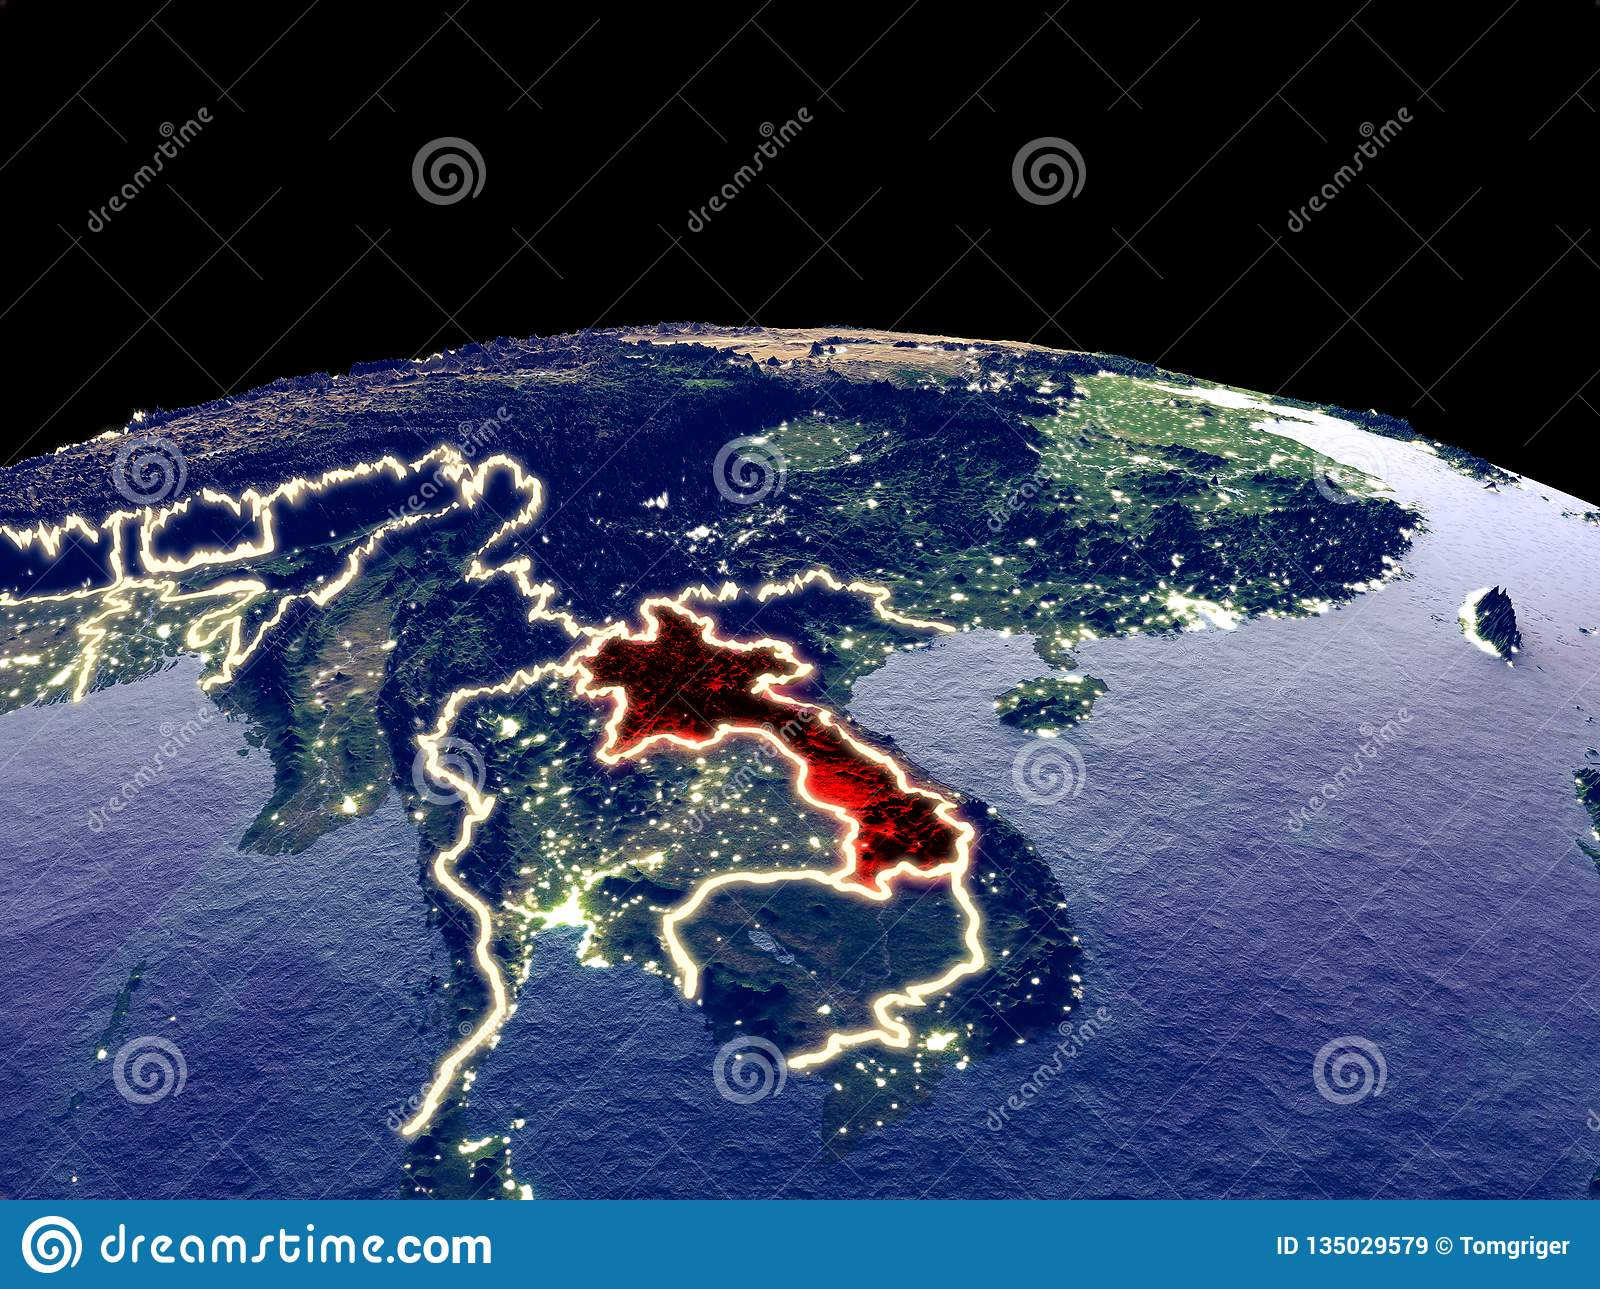 Laos on Earth from space stock illustration  Illustration of